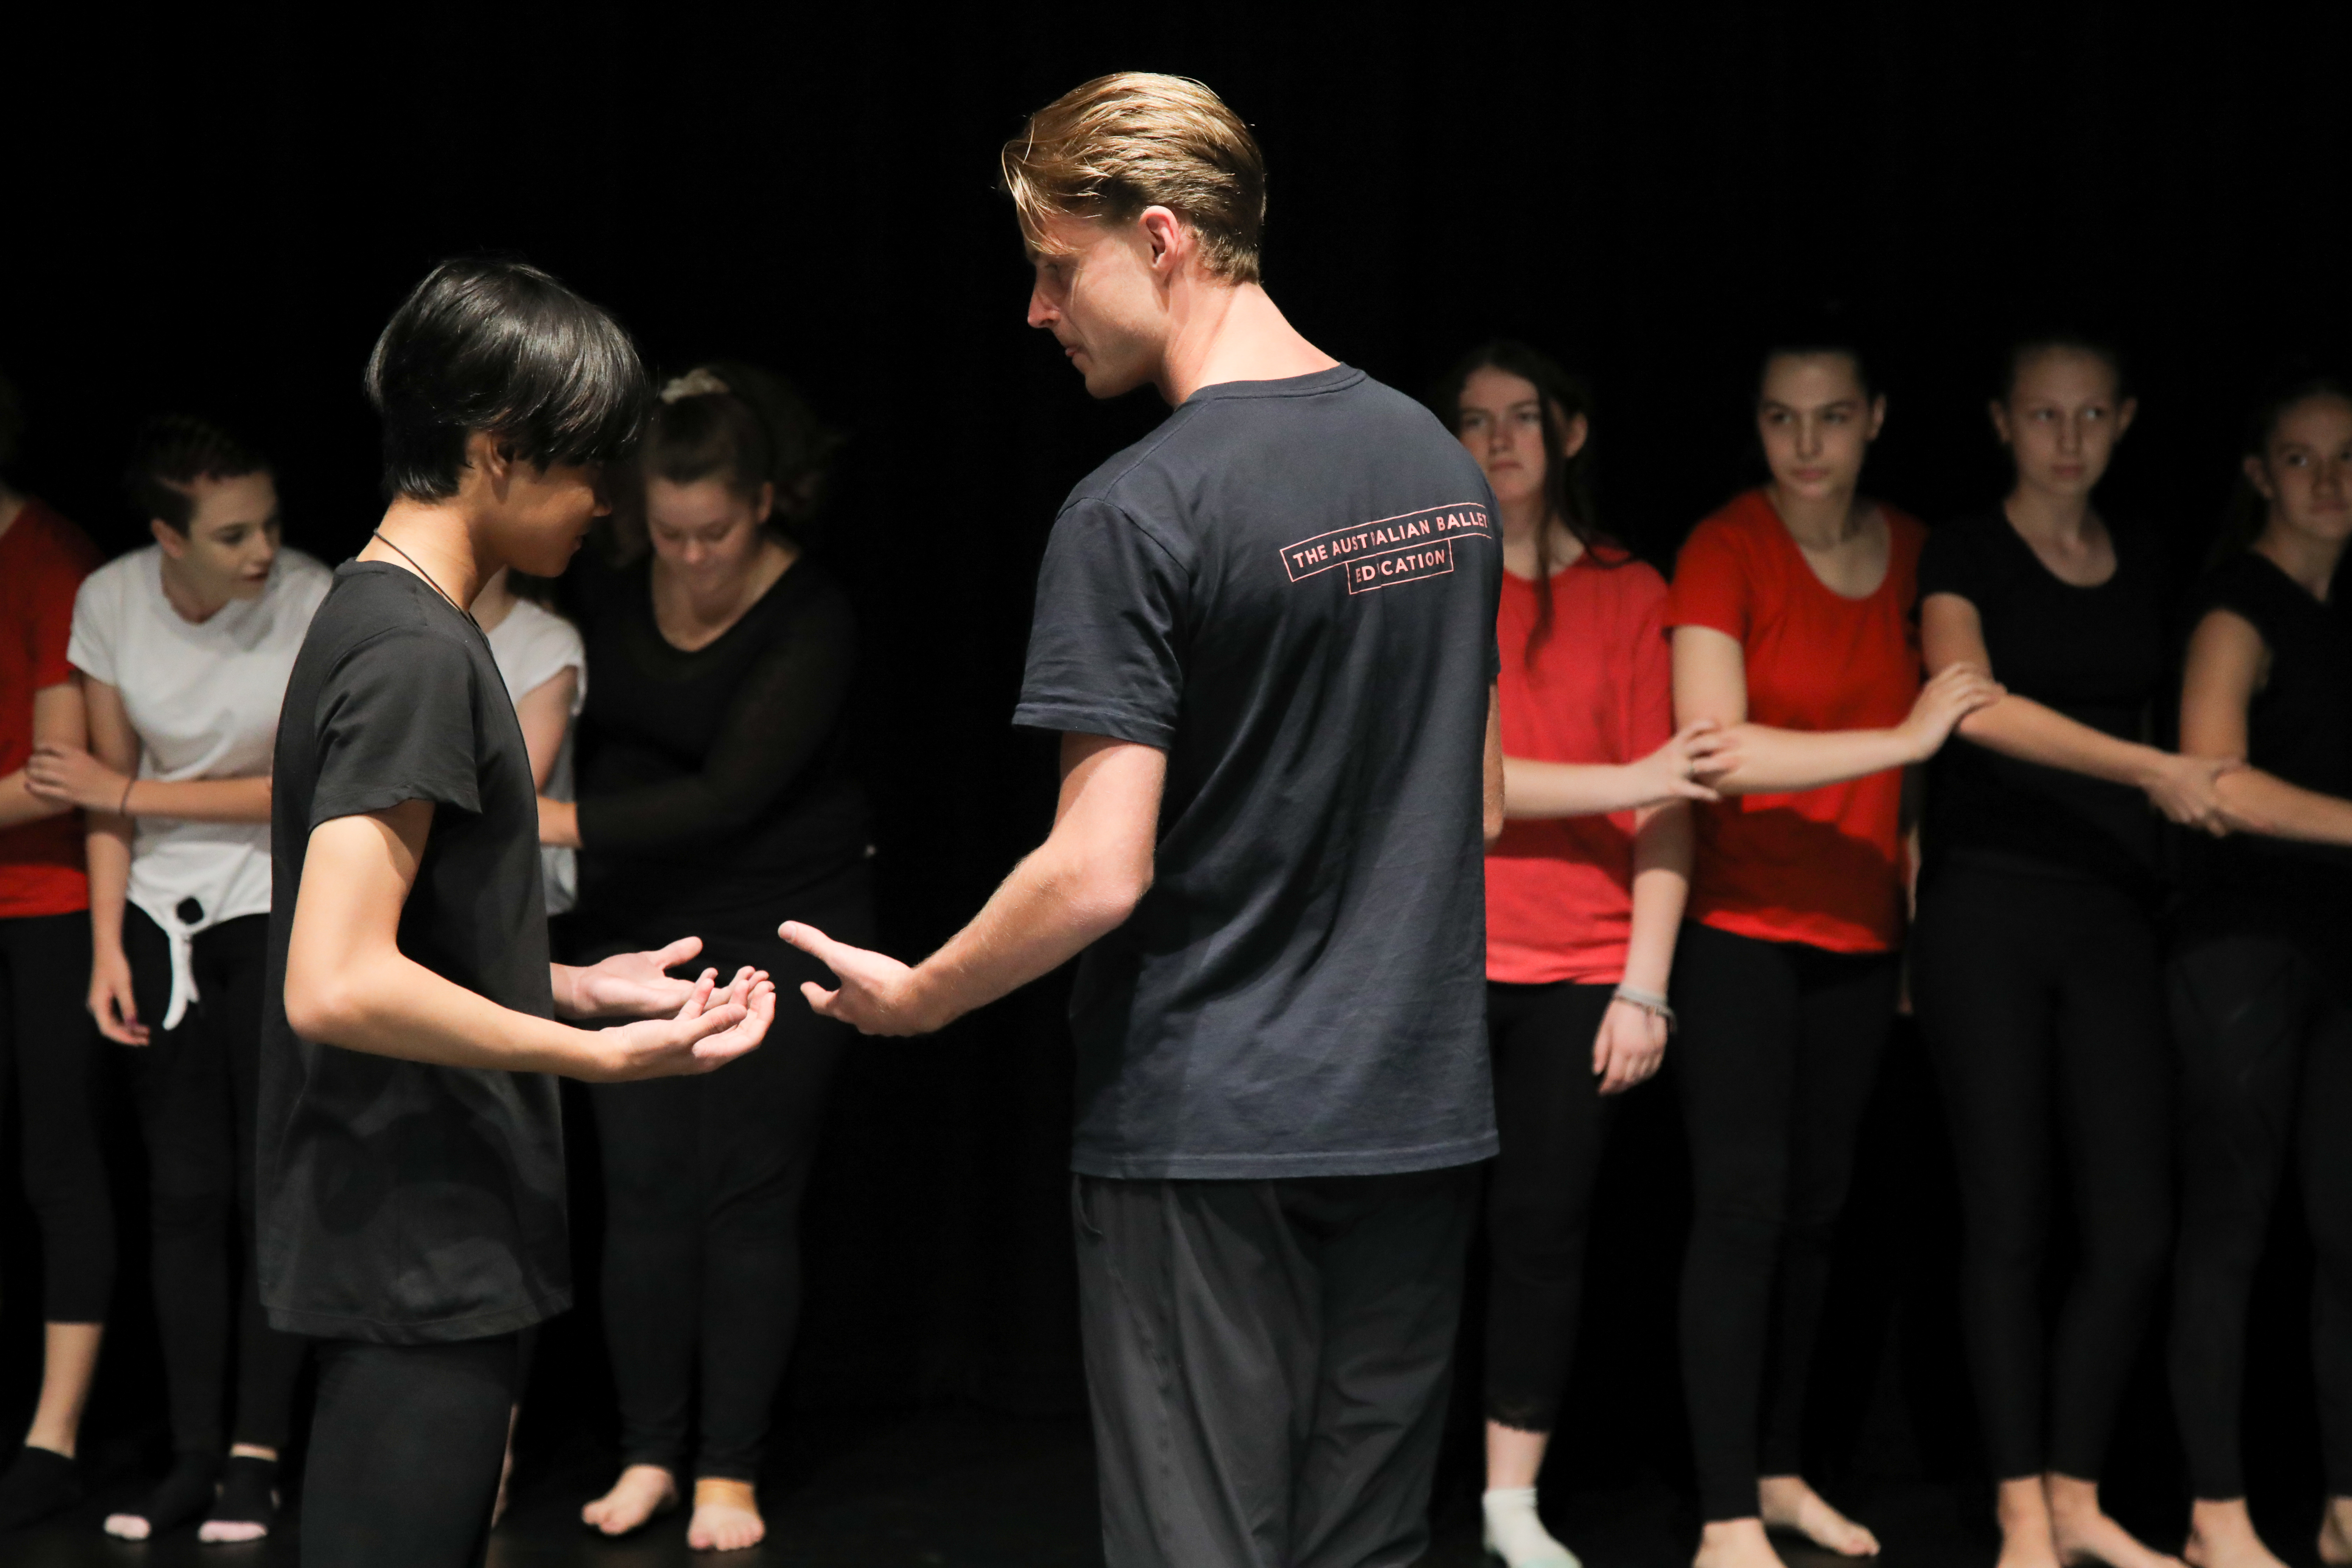 The Australian Ballet will partner with Greater Shepparton Secondary College this year